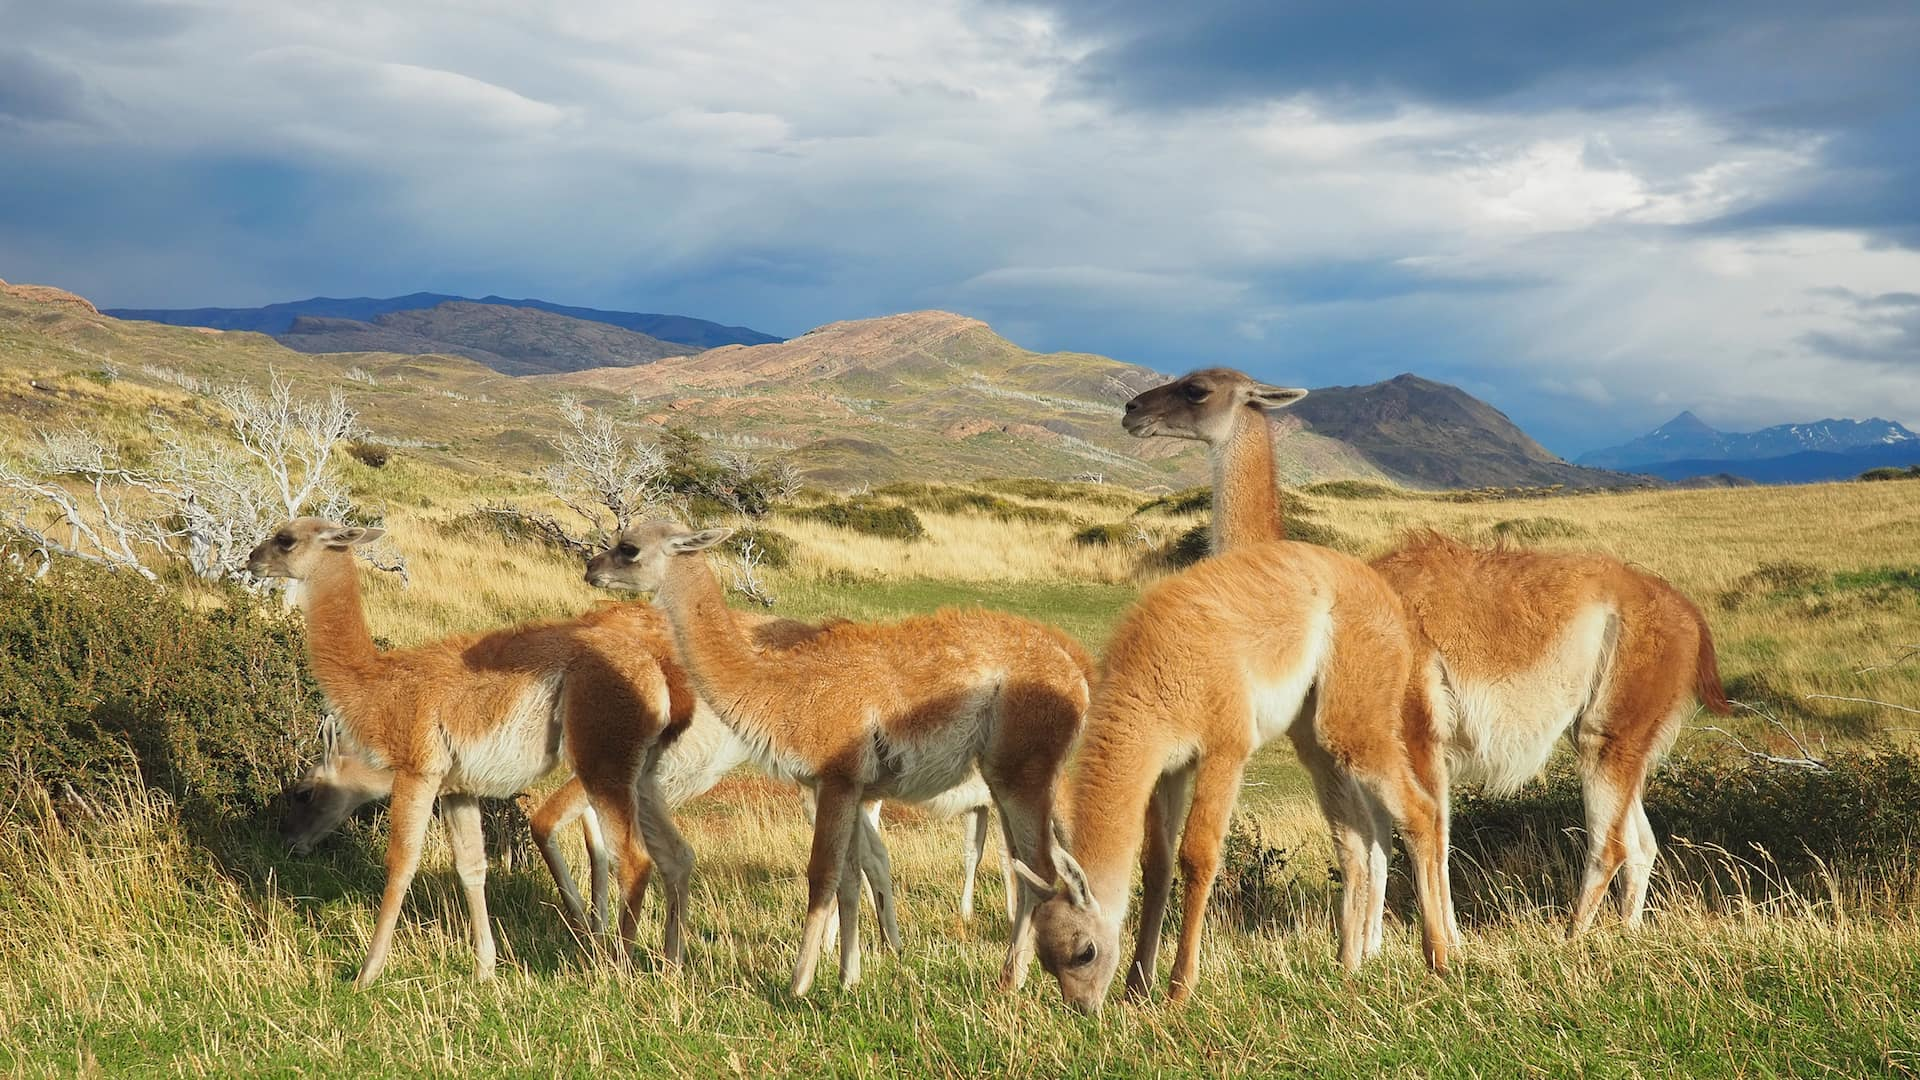 Guanacos grazing beside the trail